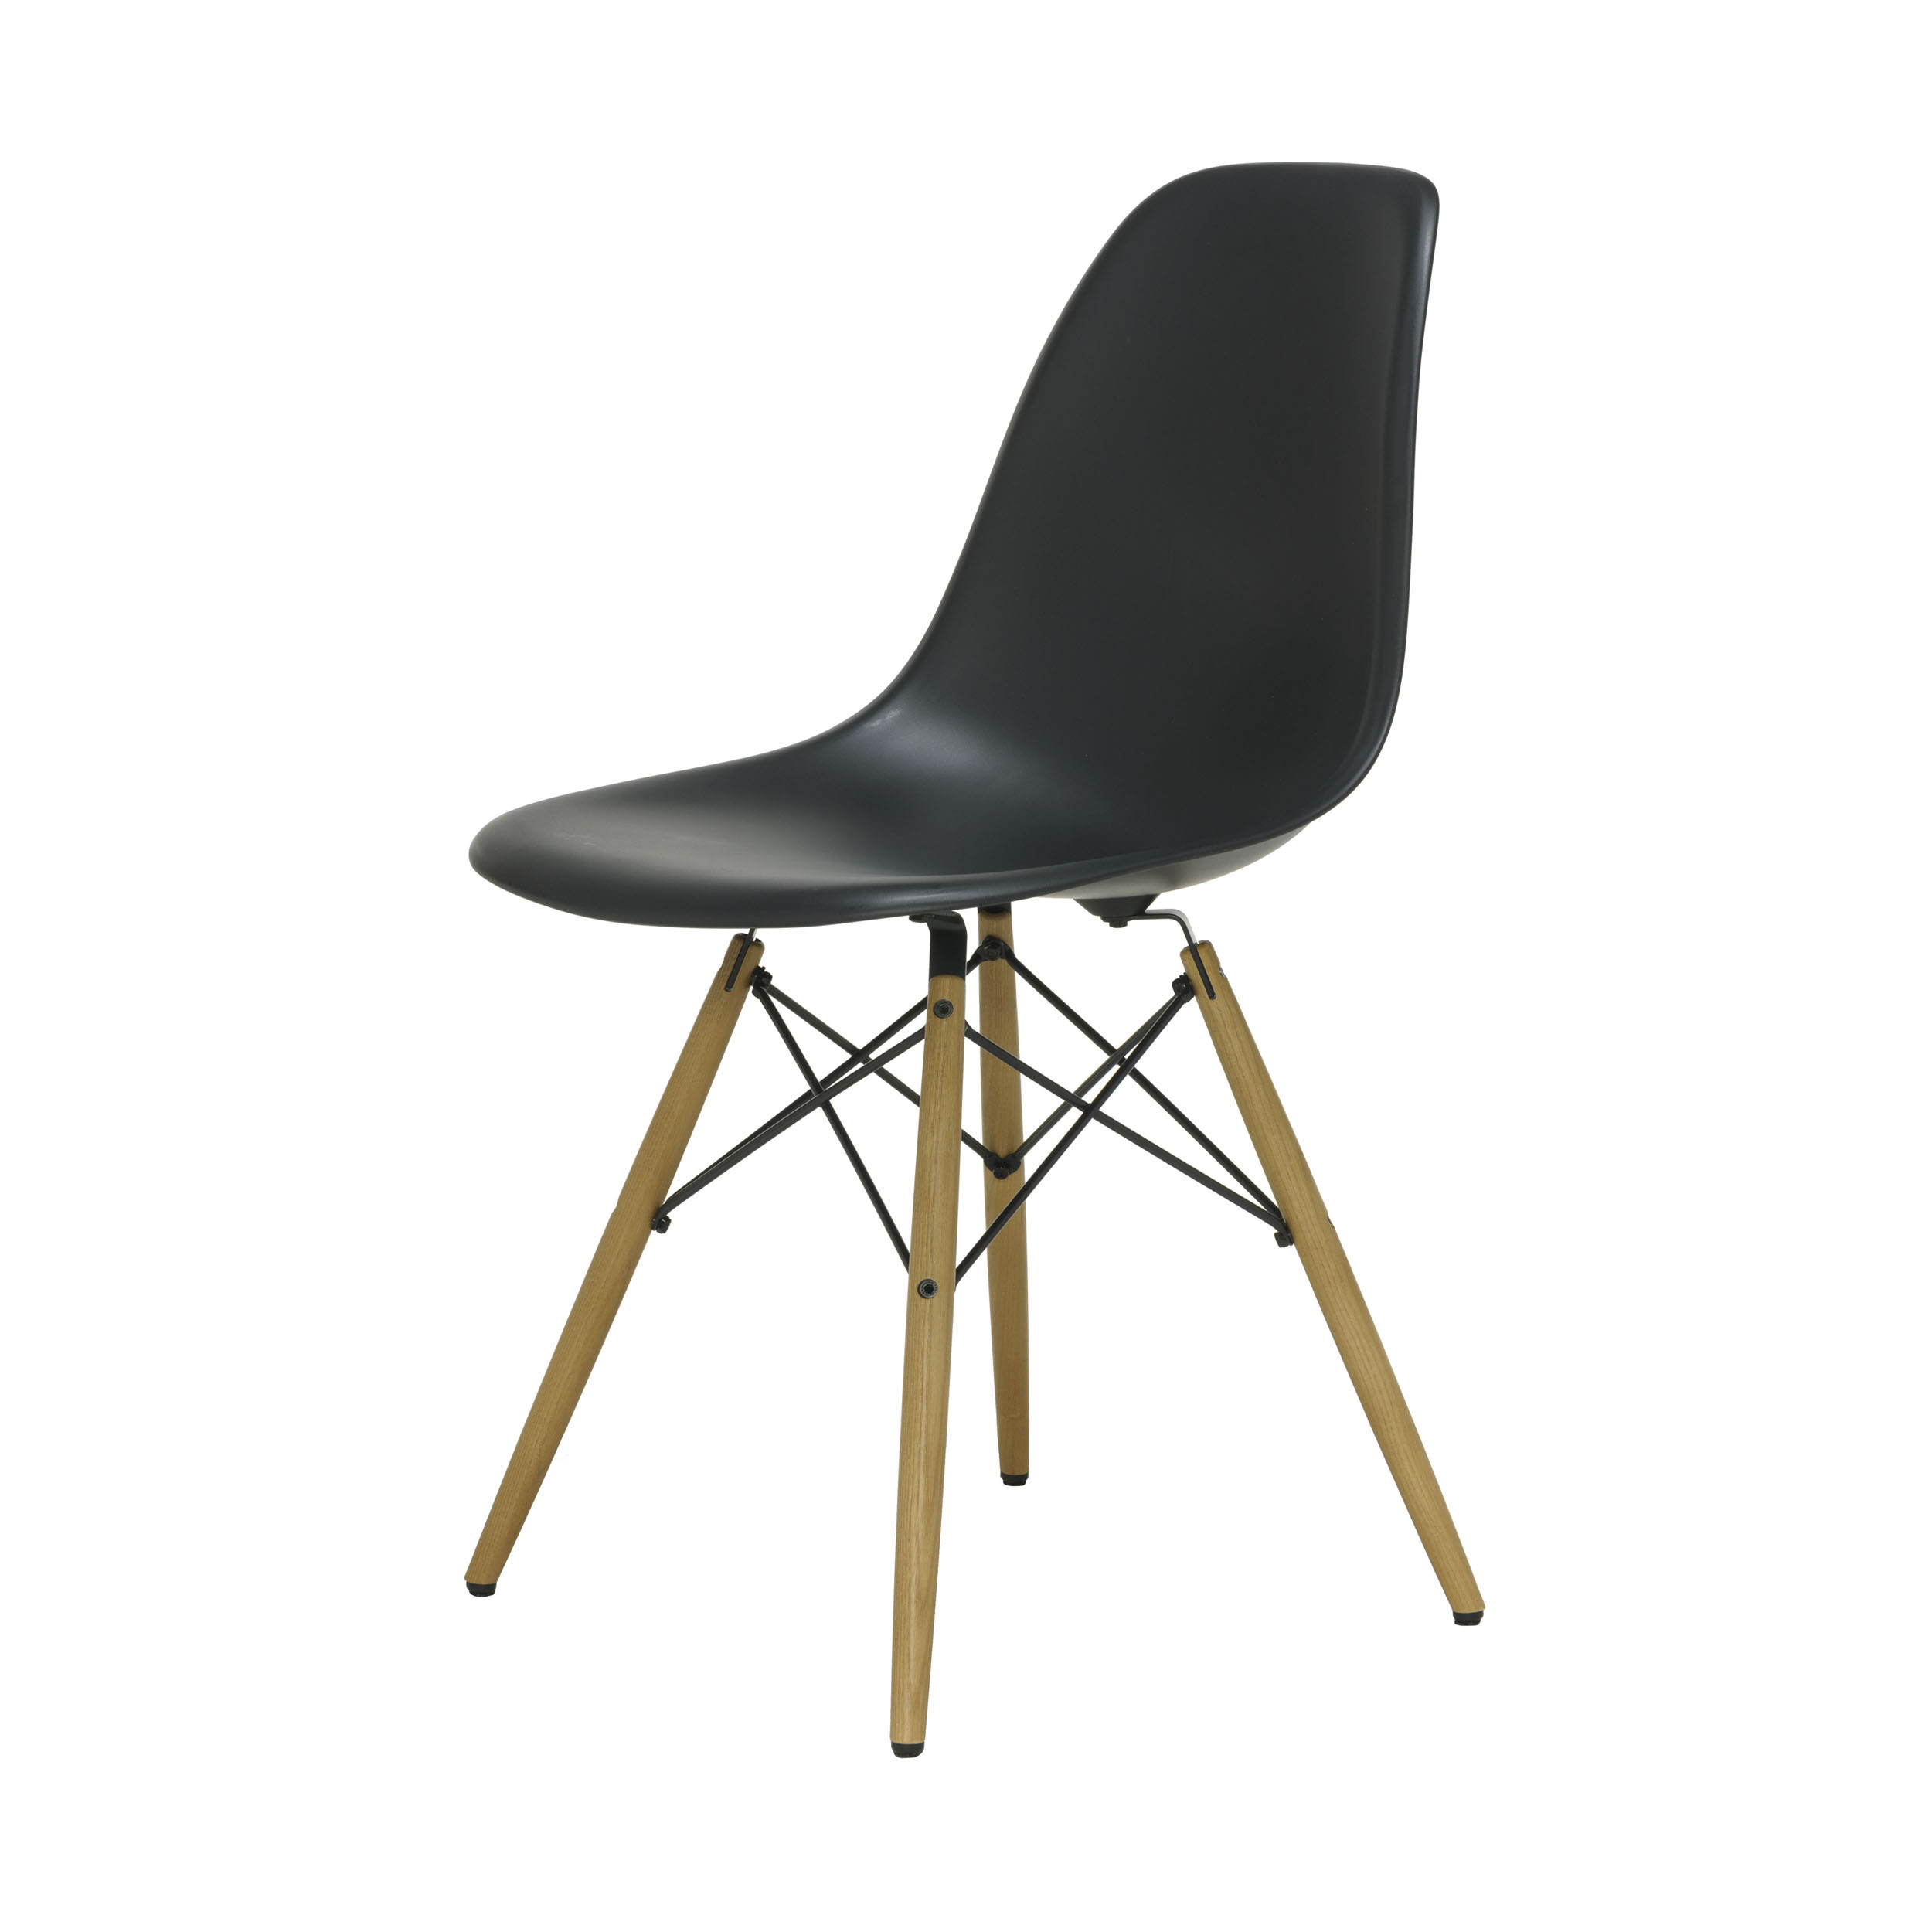 eames plastic side chair stuhl dsw mit filzgleitern basic dark esche neue ma e. Black Bedroom Furniture Sets. Home Design Ideas